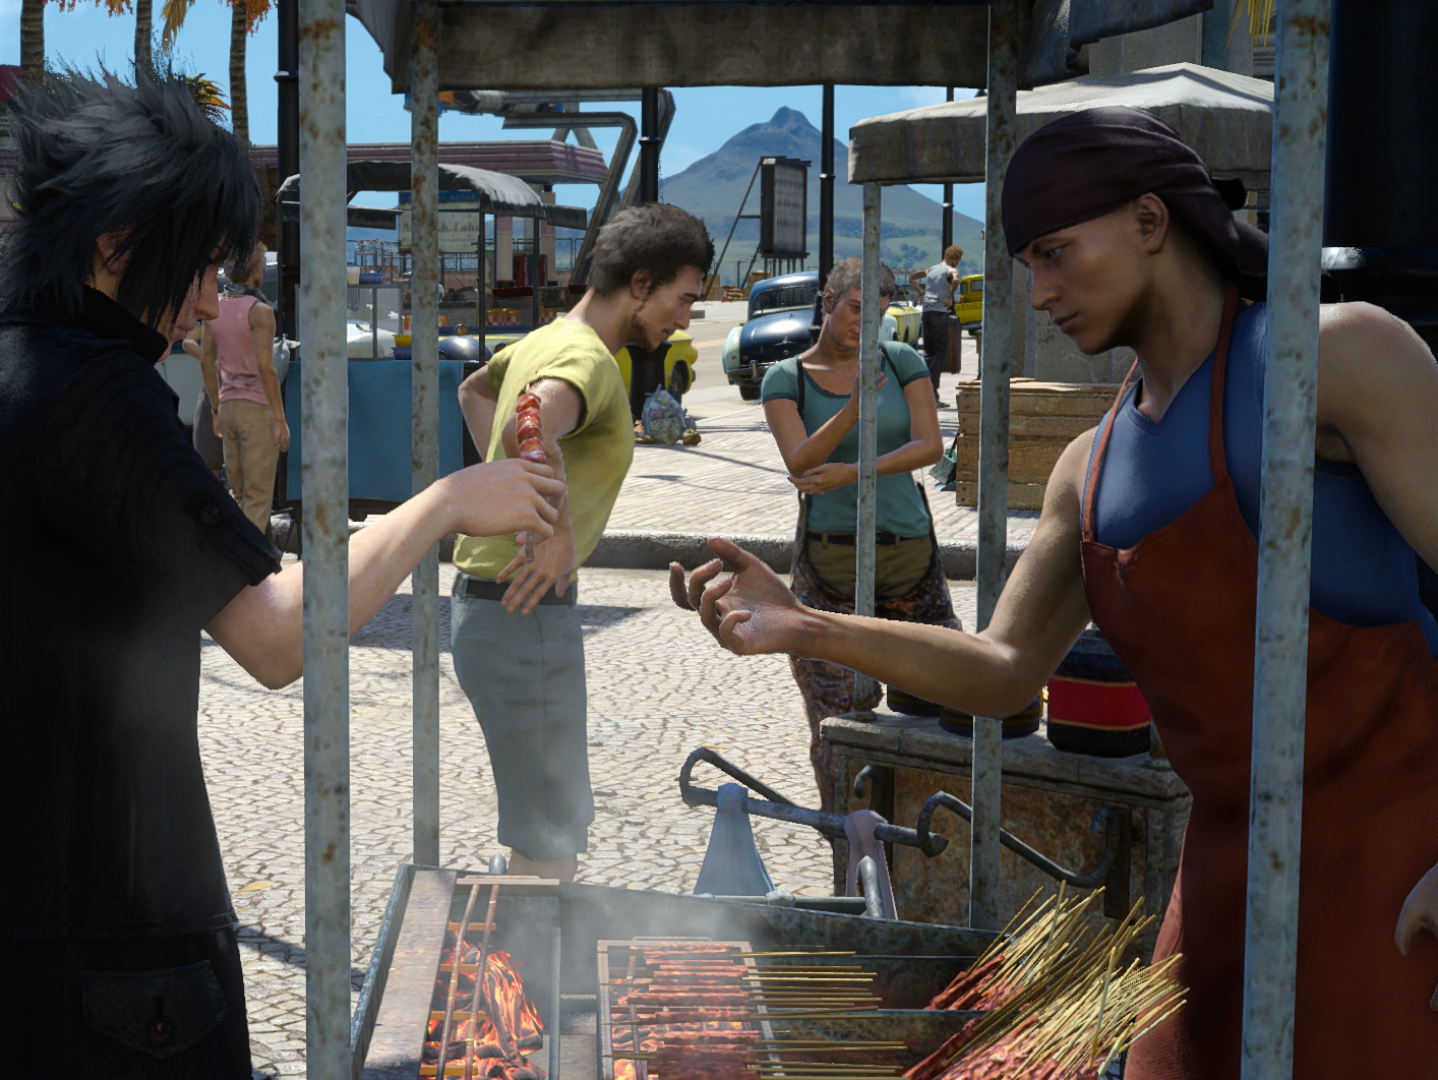 The Food in 'Final Fantasy XV' Will Legit Make You Hungry